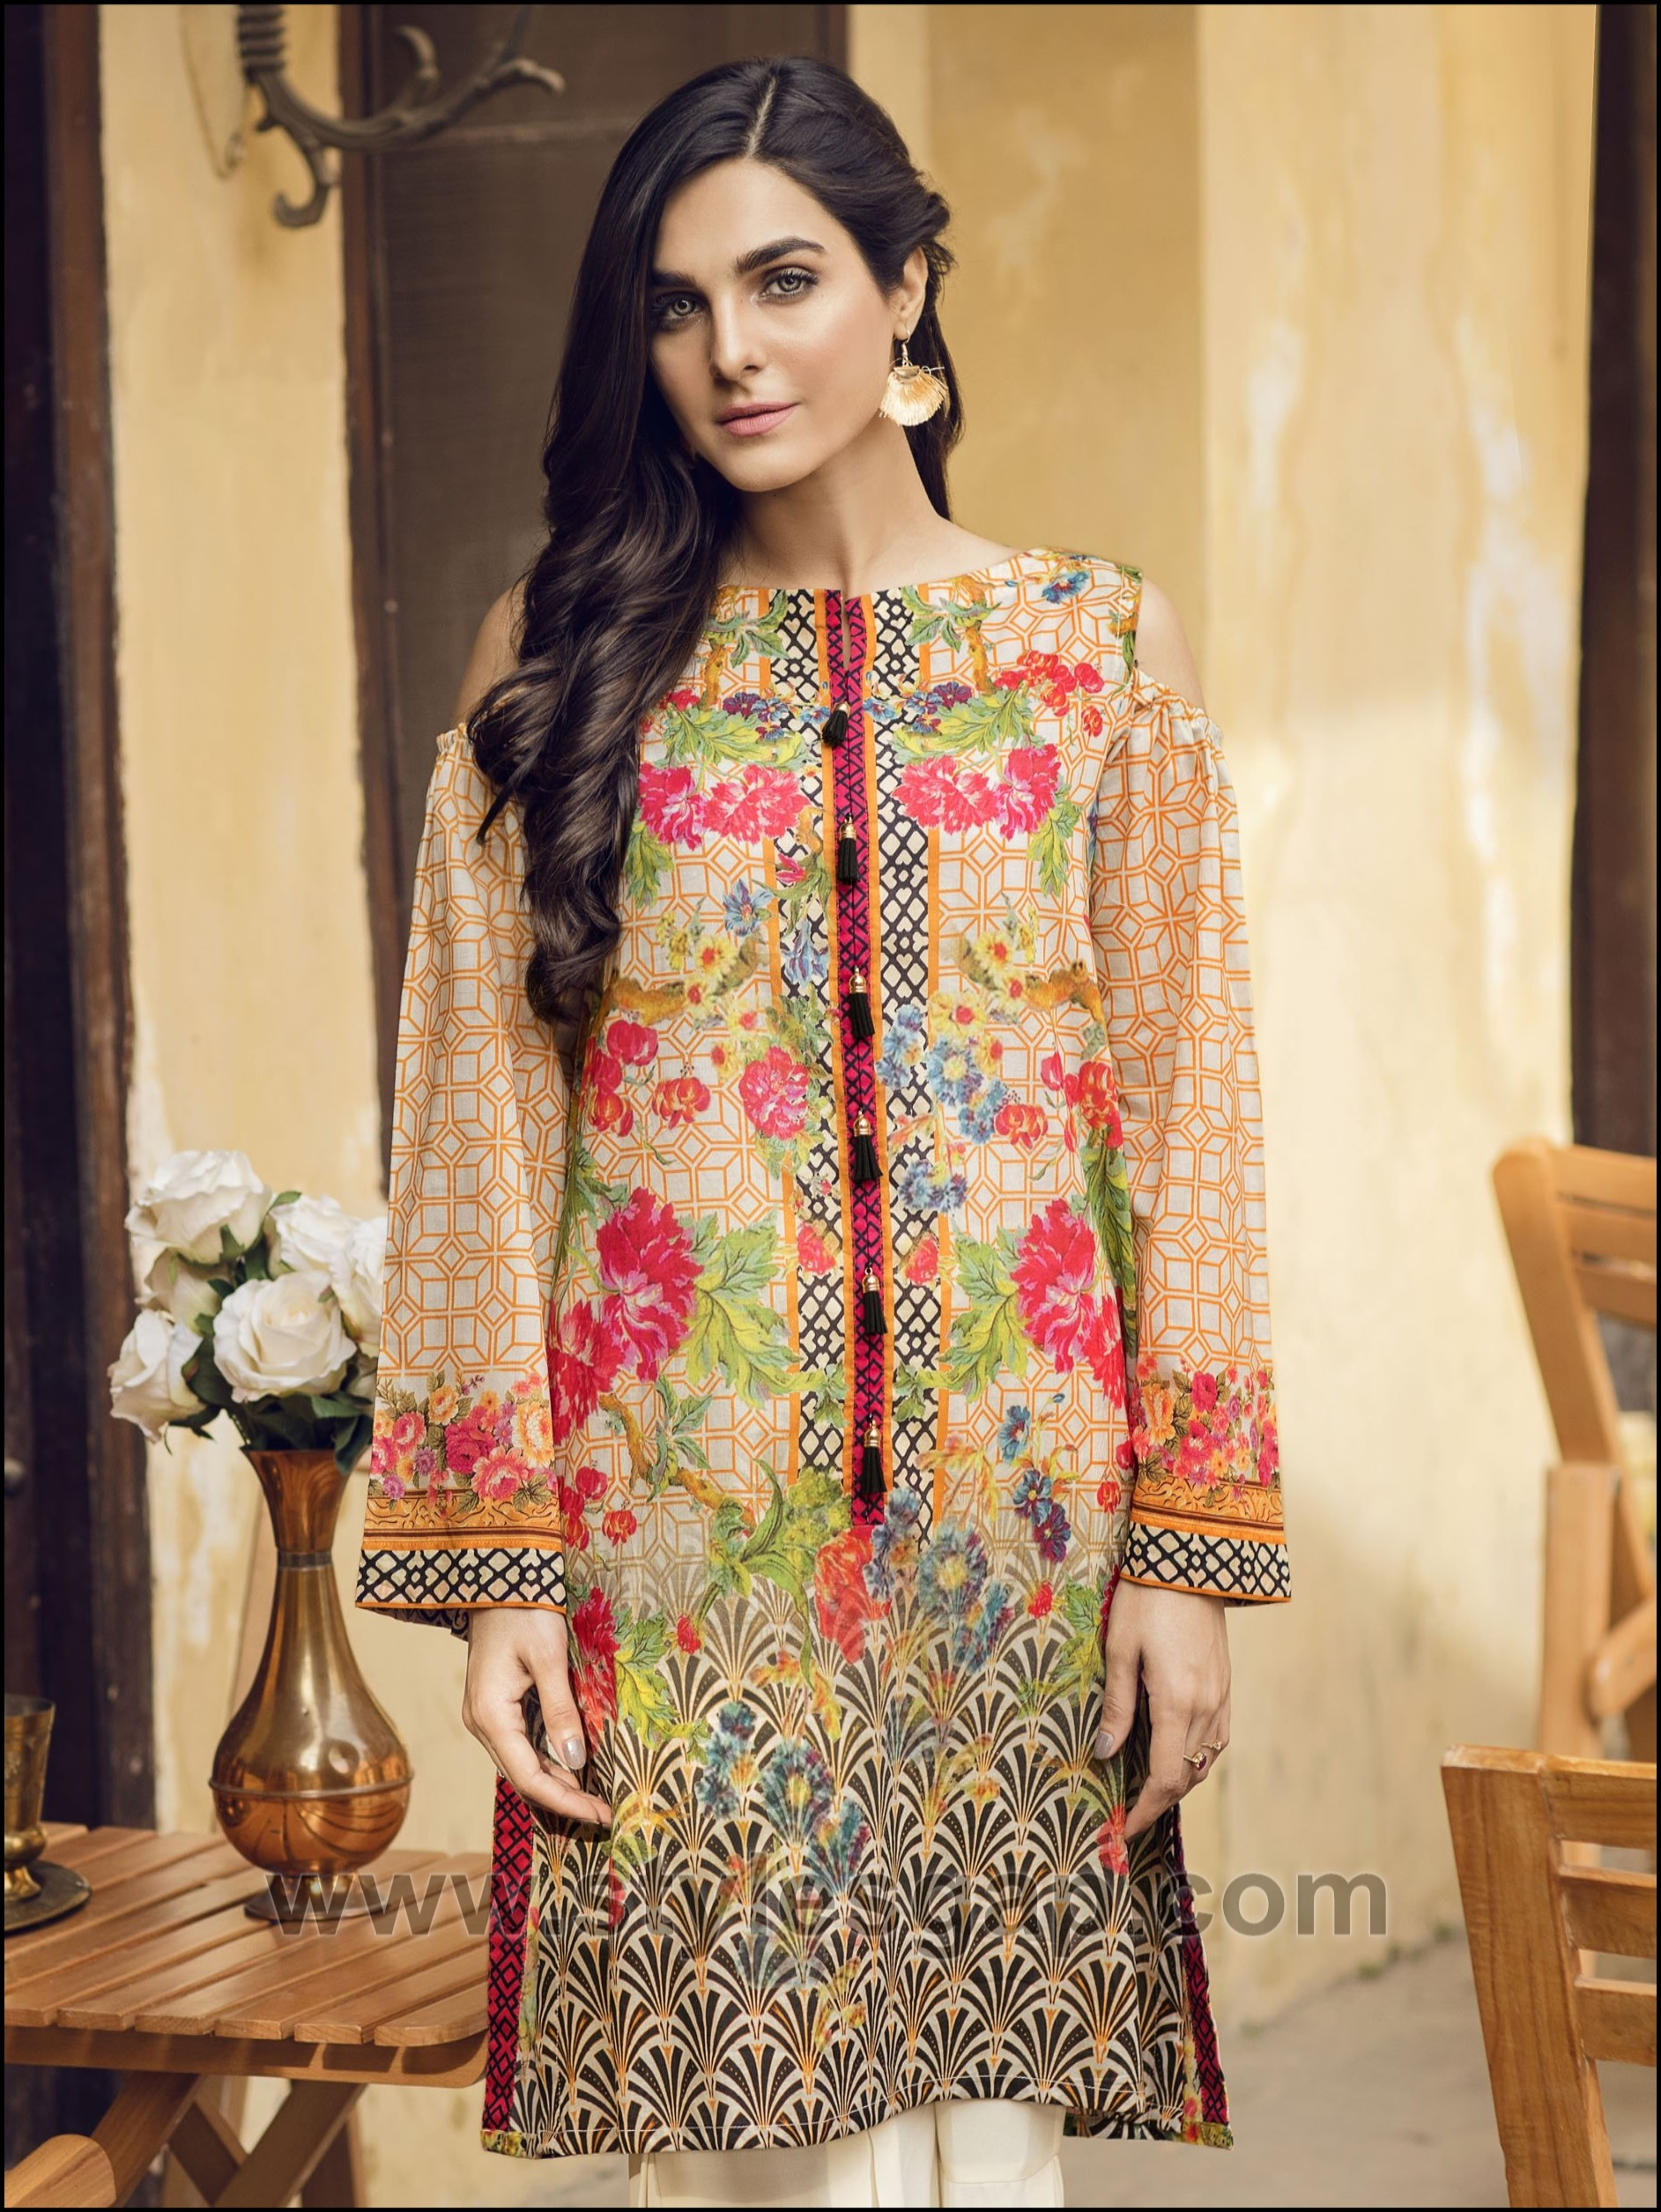 d45f44e26e ... birthdays in a comfortable and adorable outfit pairing a kurti with a  bottom of your choice. Check out the amazing chic designs of latest summer  lawn ...